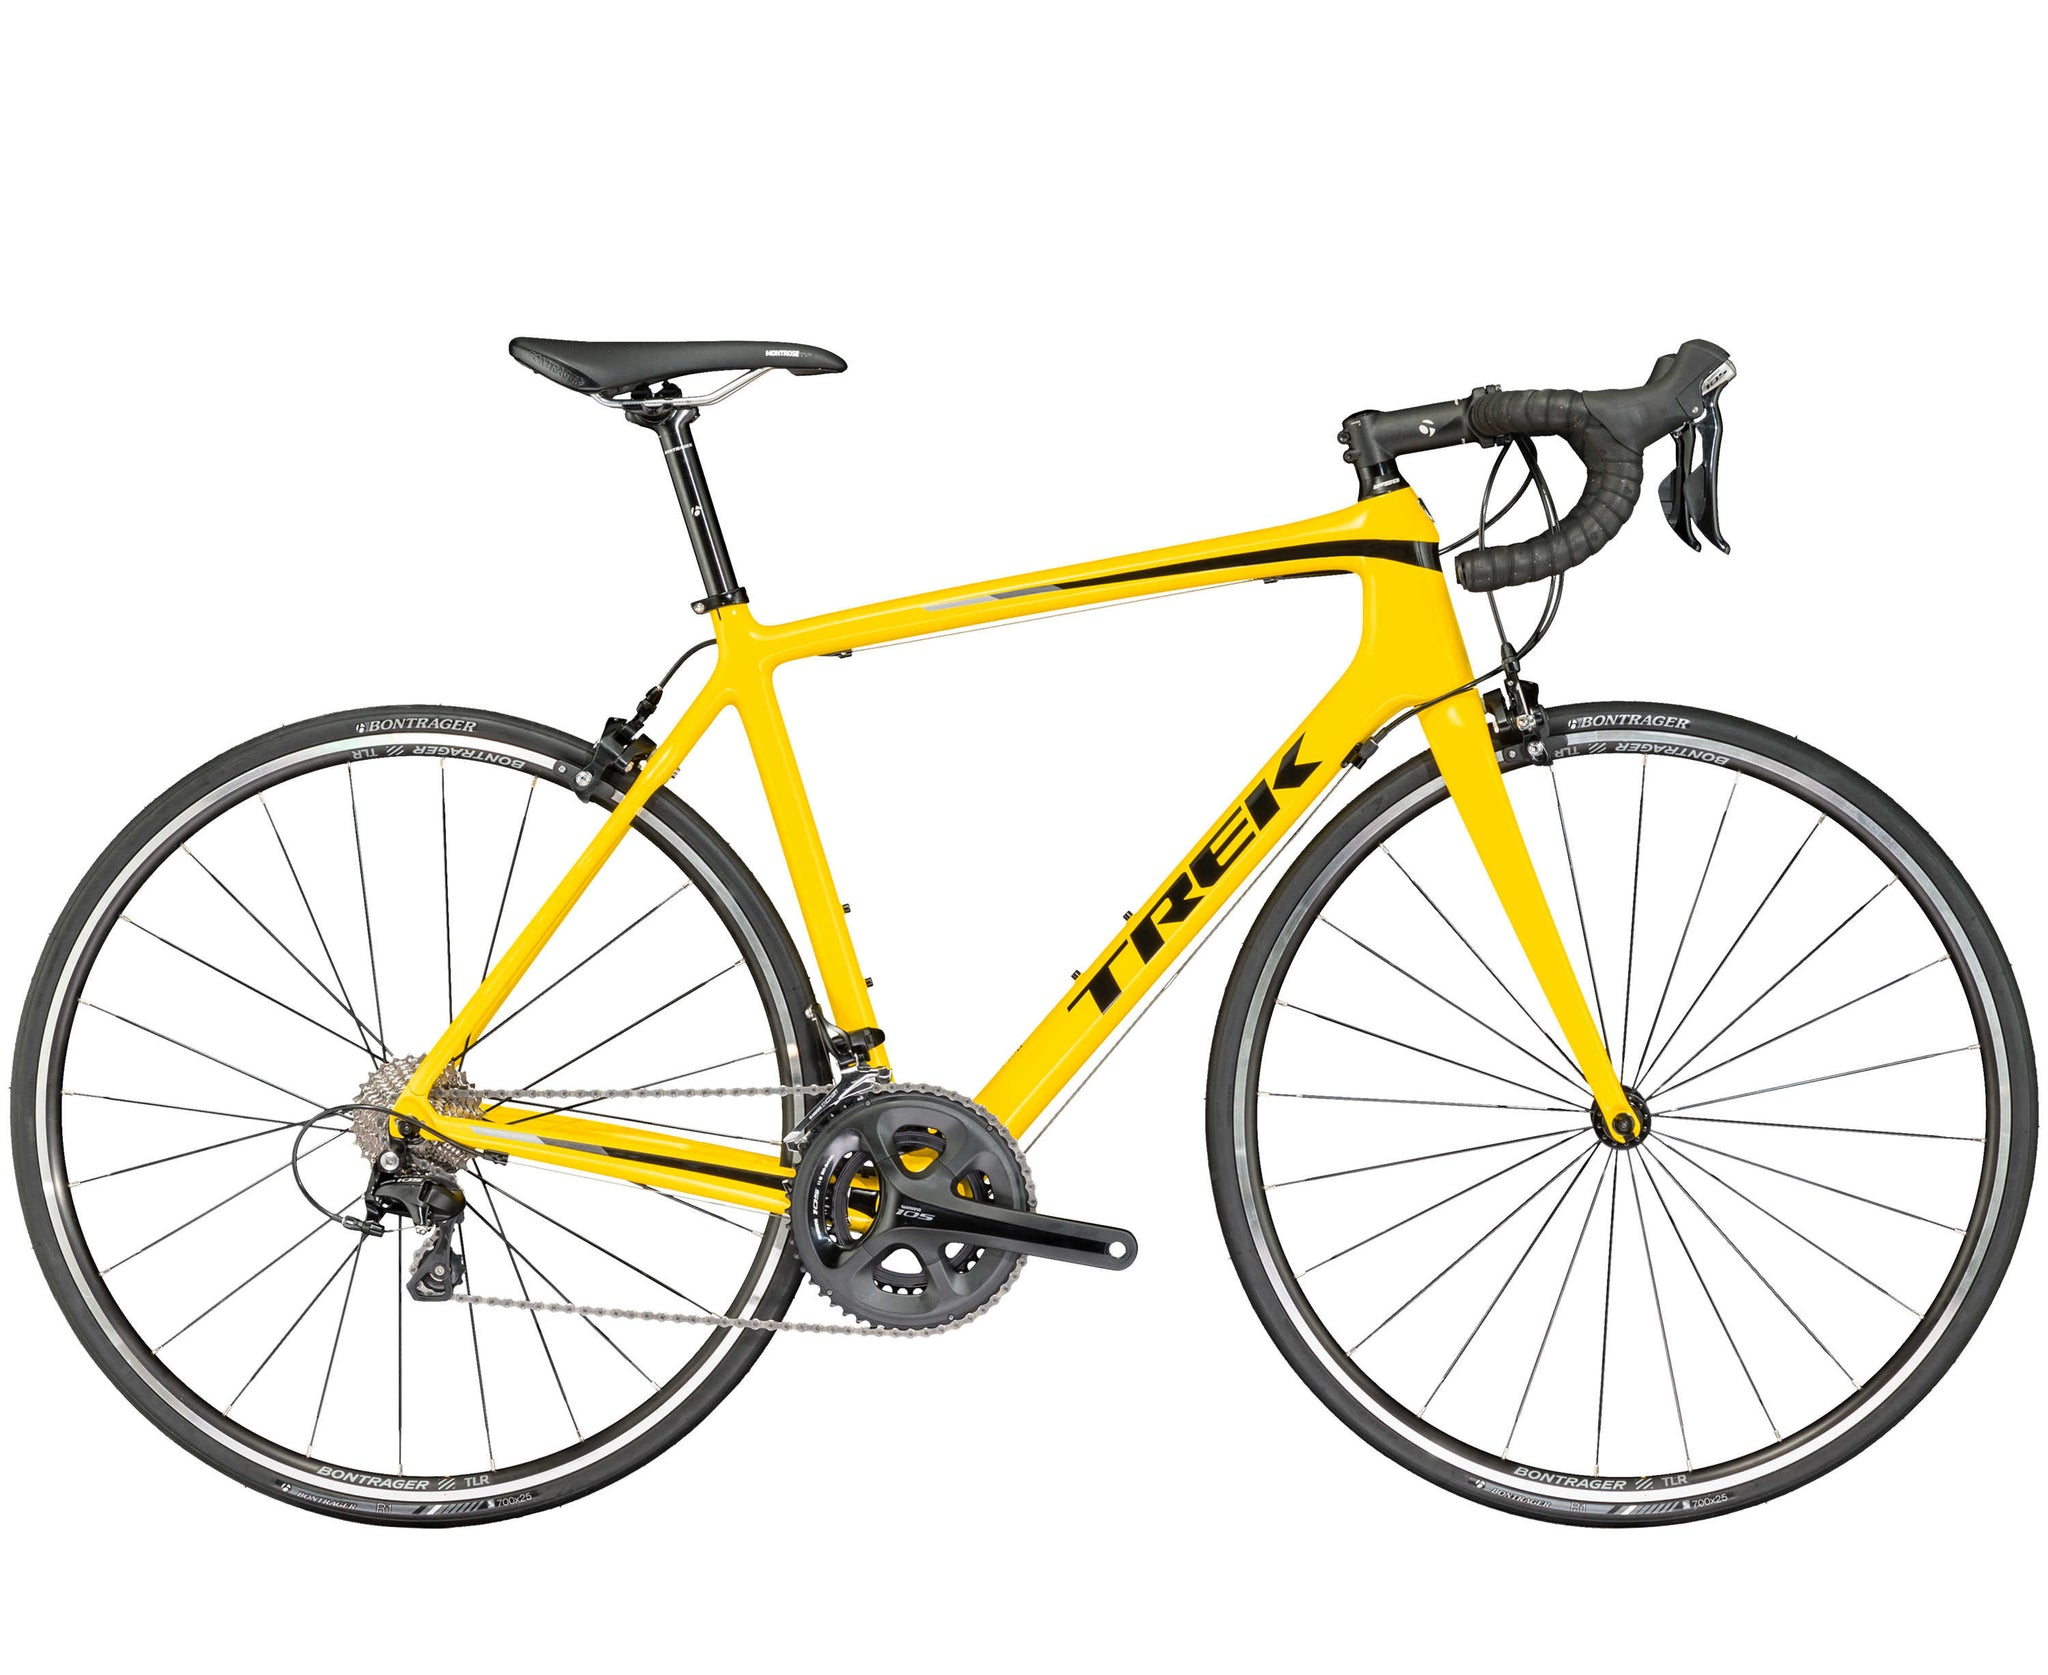 TREK EMONDA S5 YELLOW ROAD BICYCLE